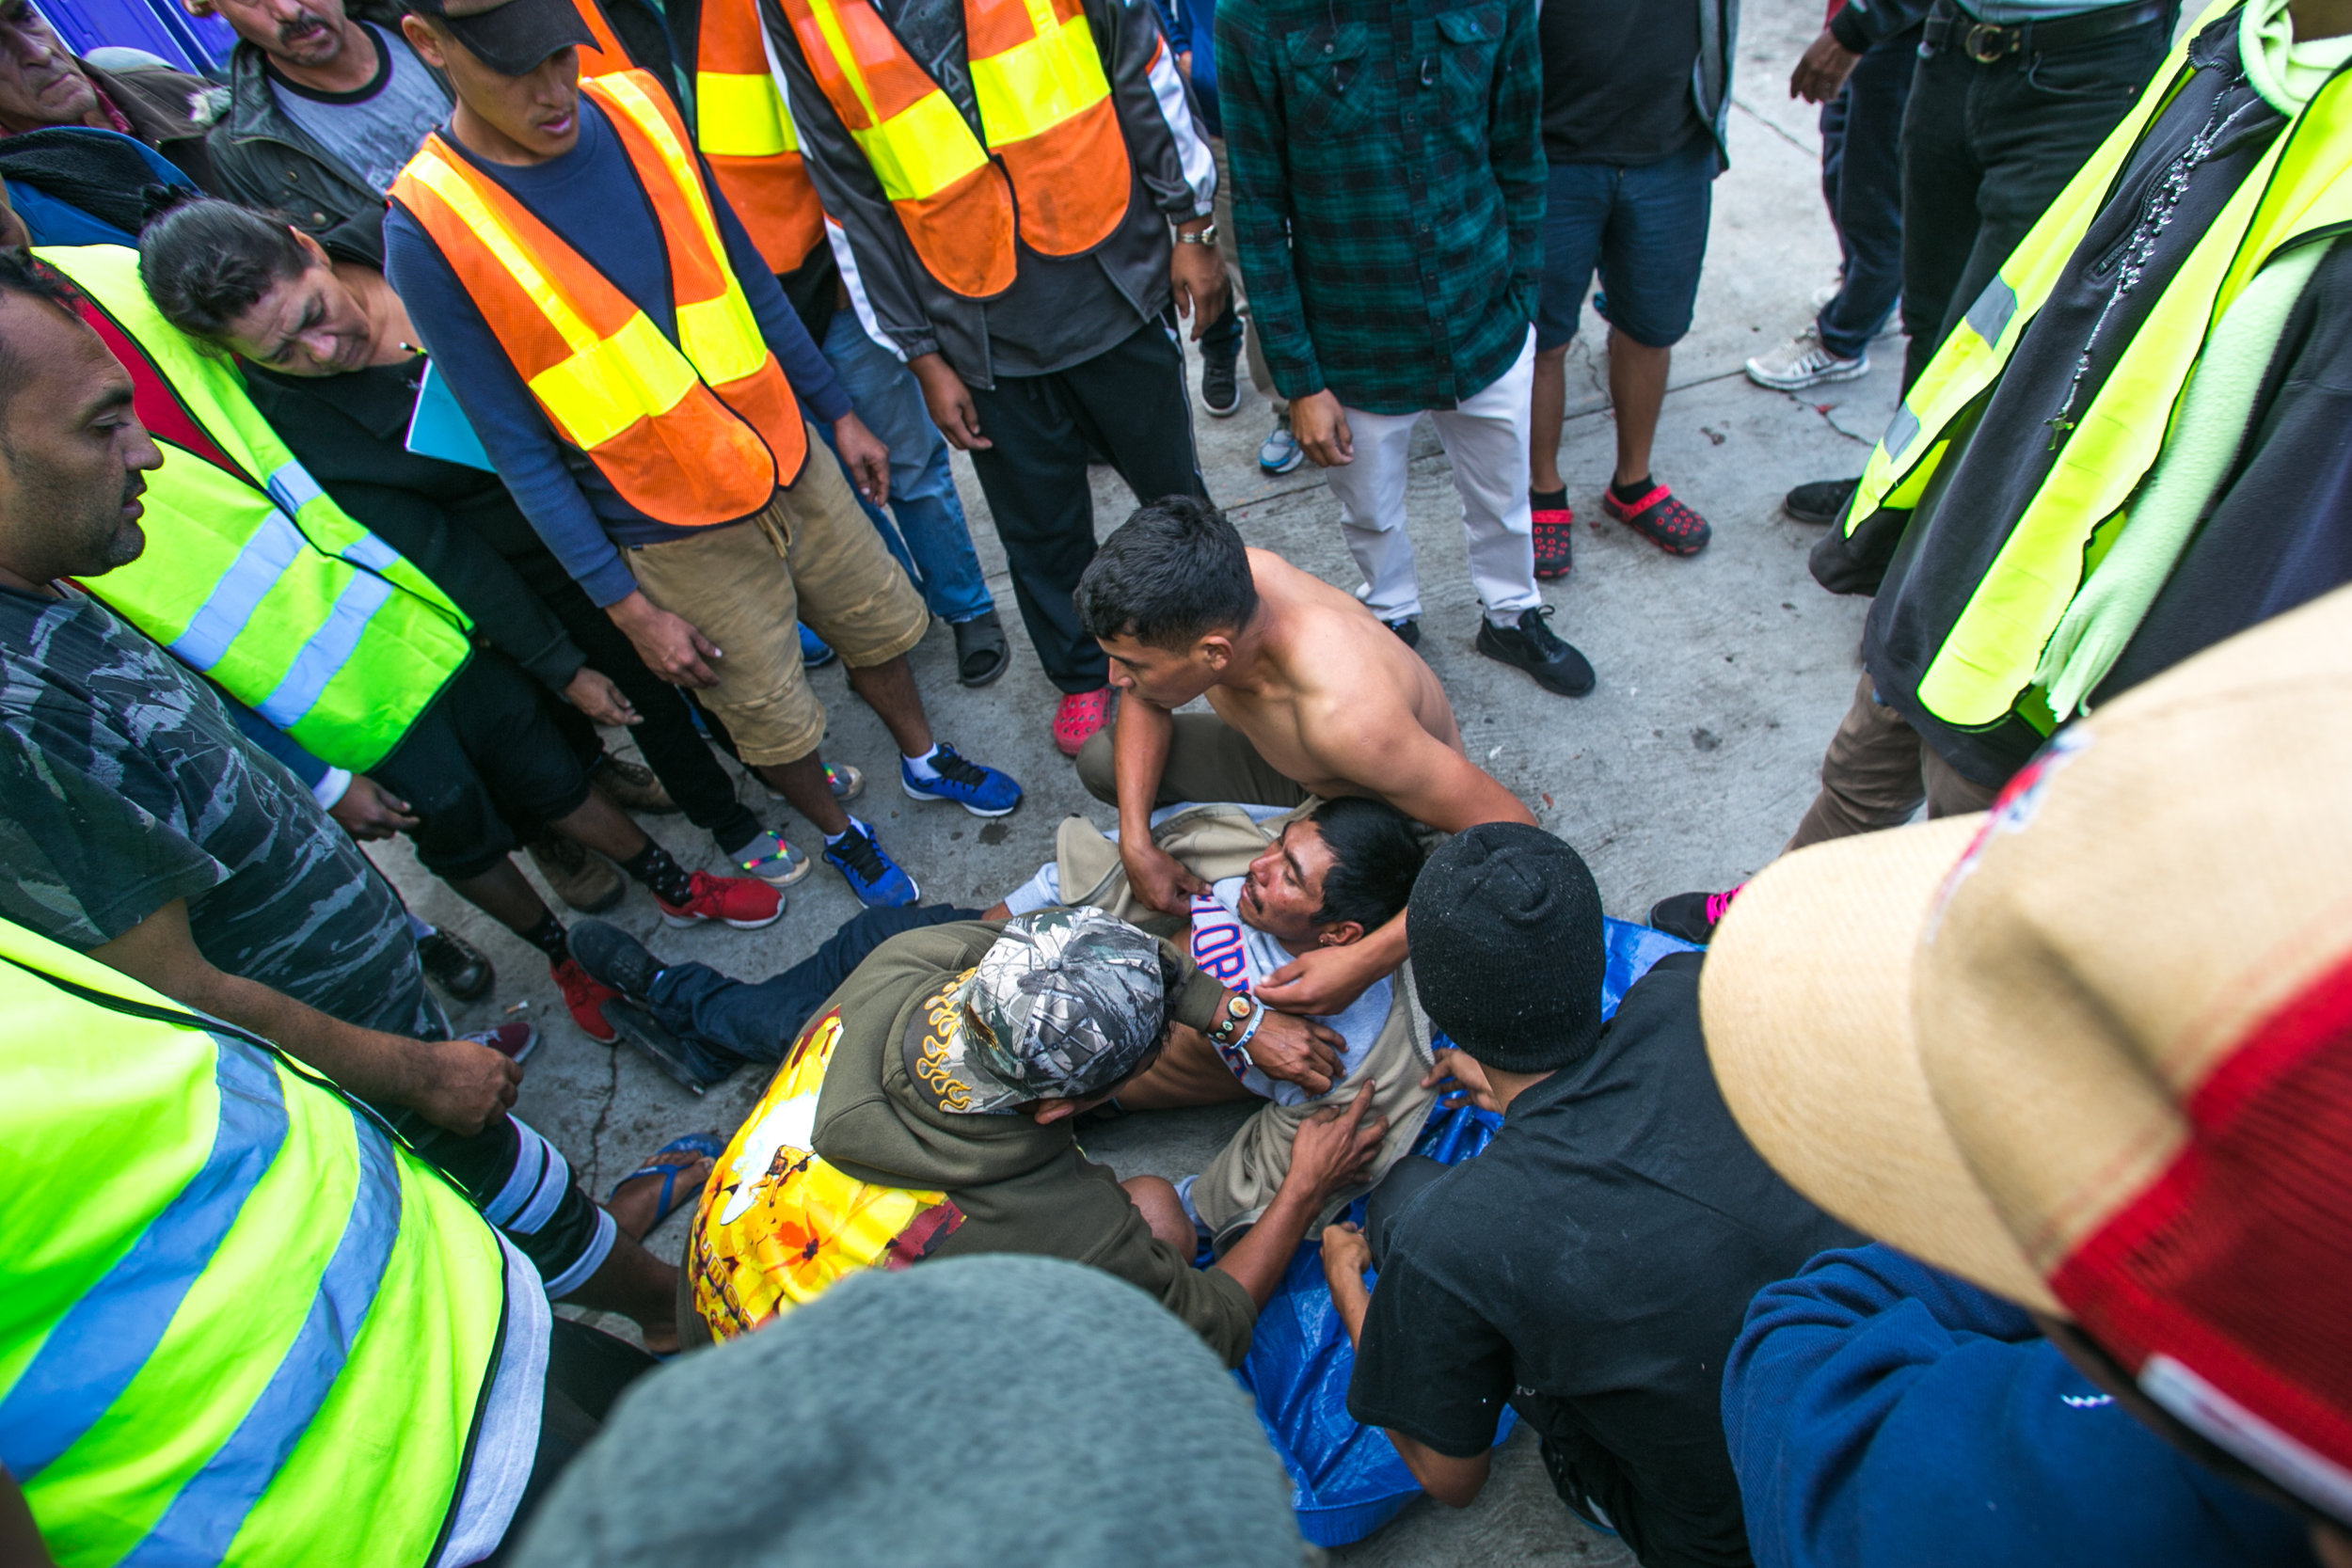 A man receives rudimentary medical attention from other migrants while waiting for emergency services. He began seizing and vomiting due to a lack of medication according to responders on scene. Medical services were suspended in the facility several days prior in an effort to close the compound. Care from independent non-profits slipping past the police-guarded entrances is all that remain. Recent complaints from community members in Central Tijuana have lead to the government relocating migrant camps to low-income suburban communities on the outskirts of Tijuana.